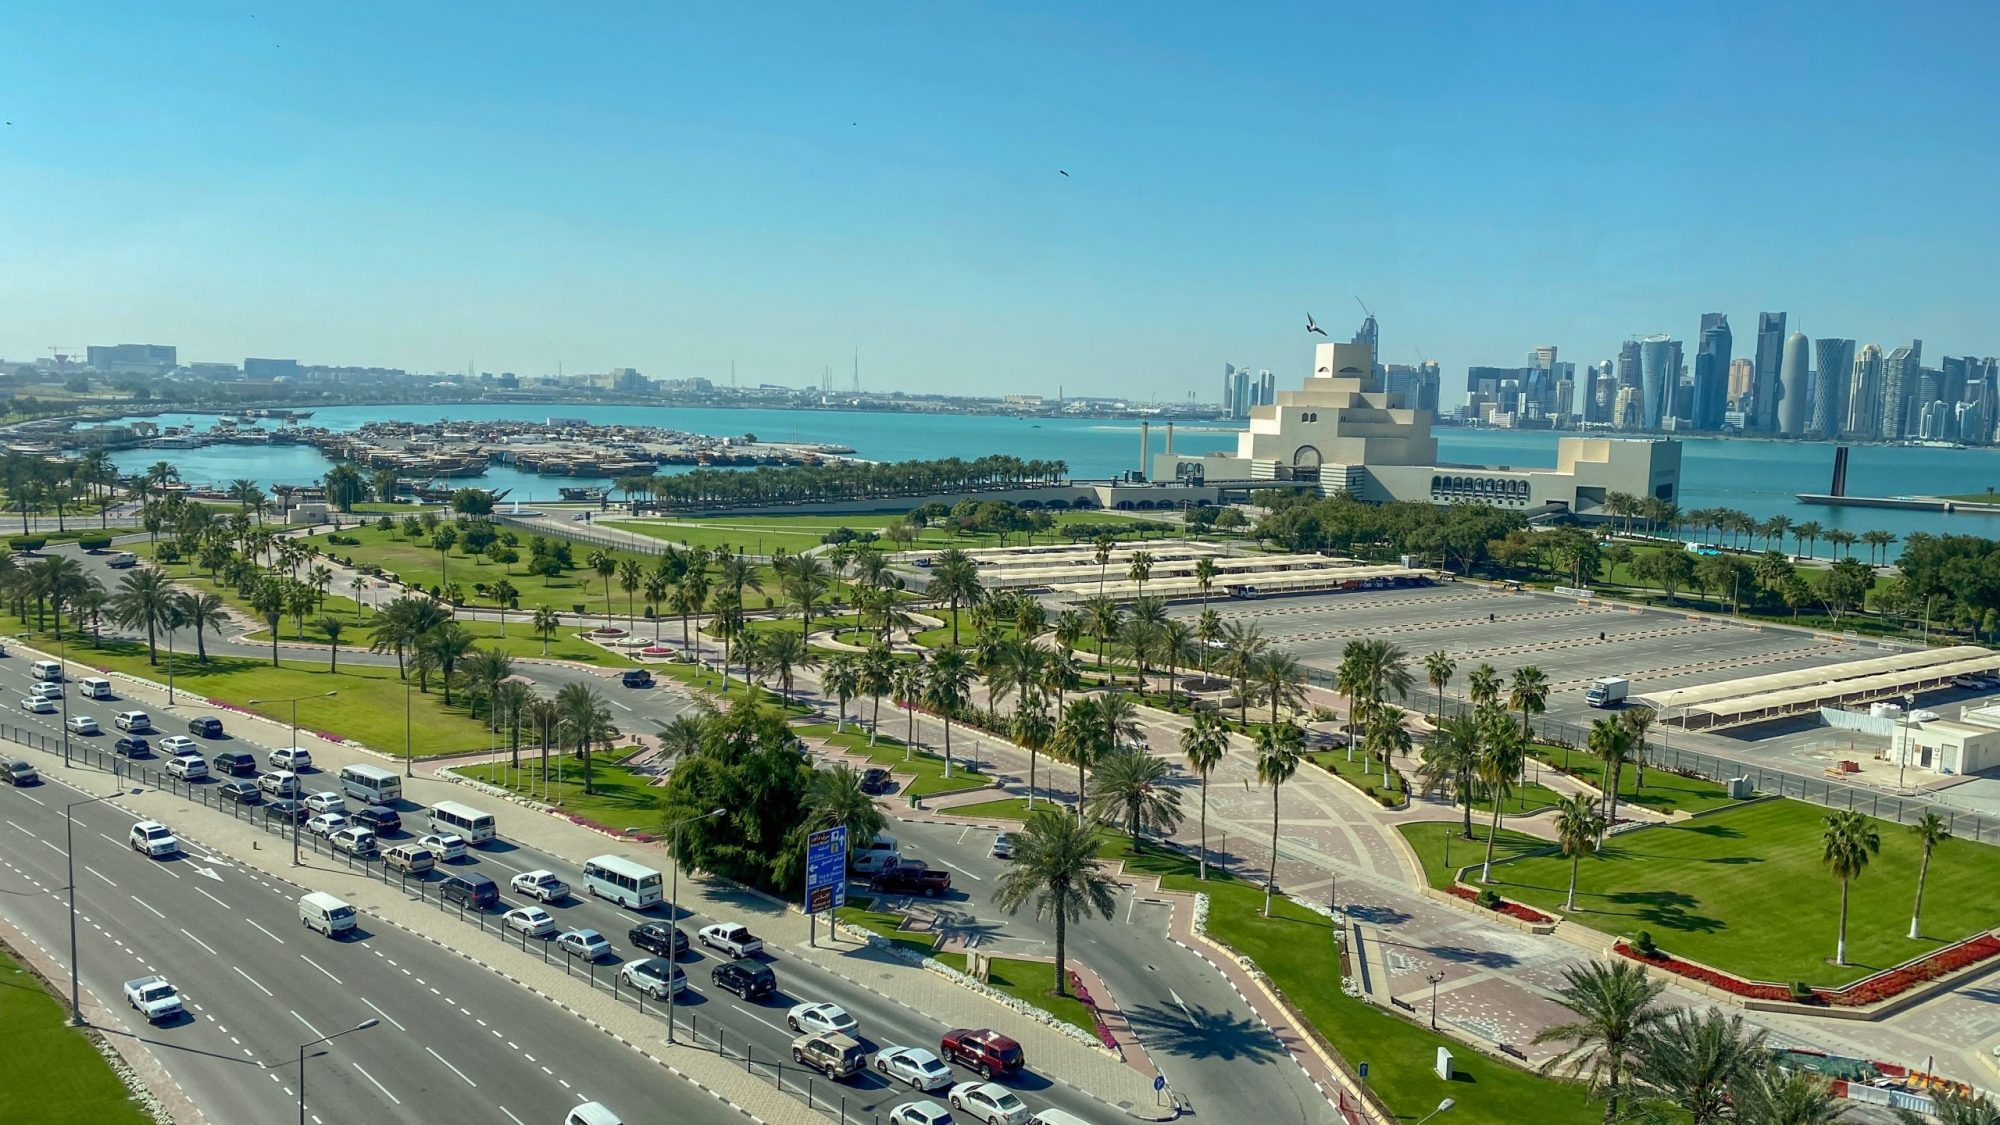 Qatar Museums Launches Curated Archaeological Tours for Culture Pass Members